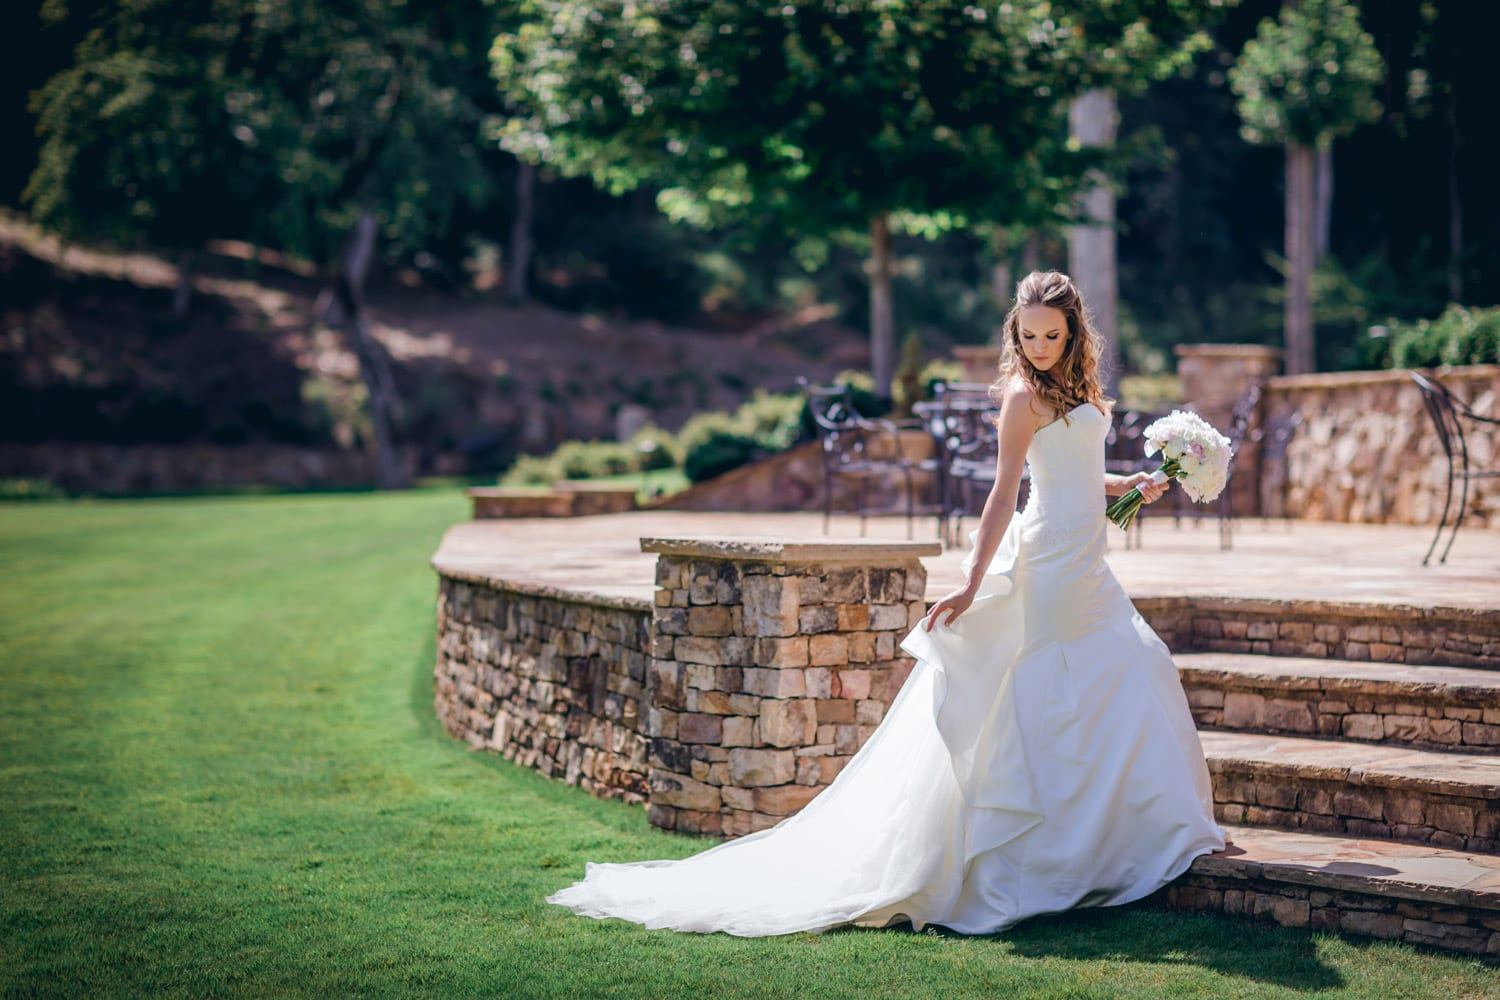 Bride poses with flowers by stone patio